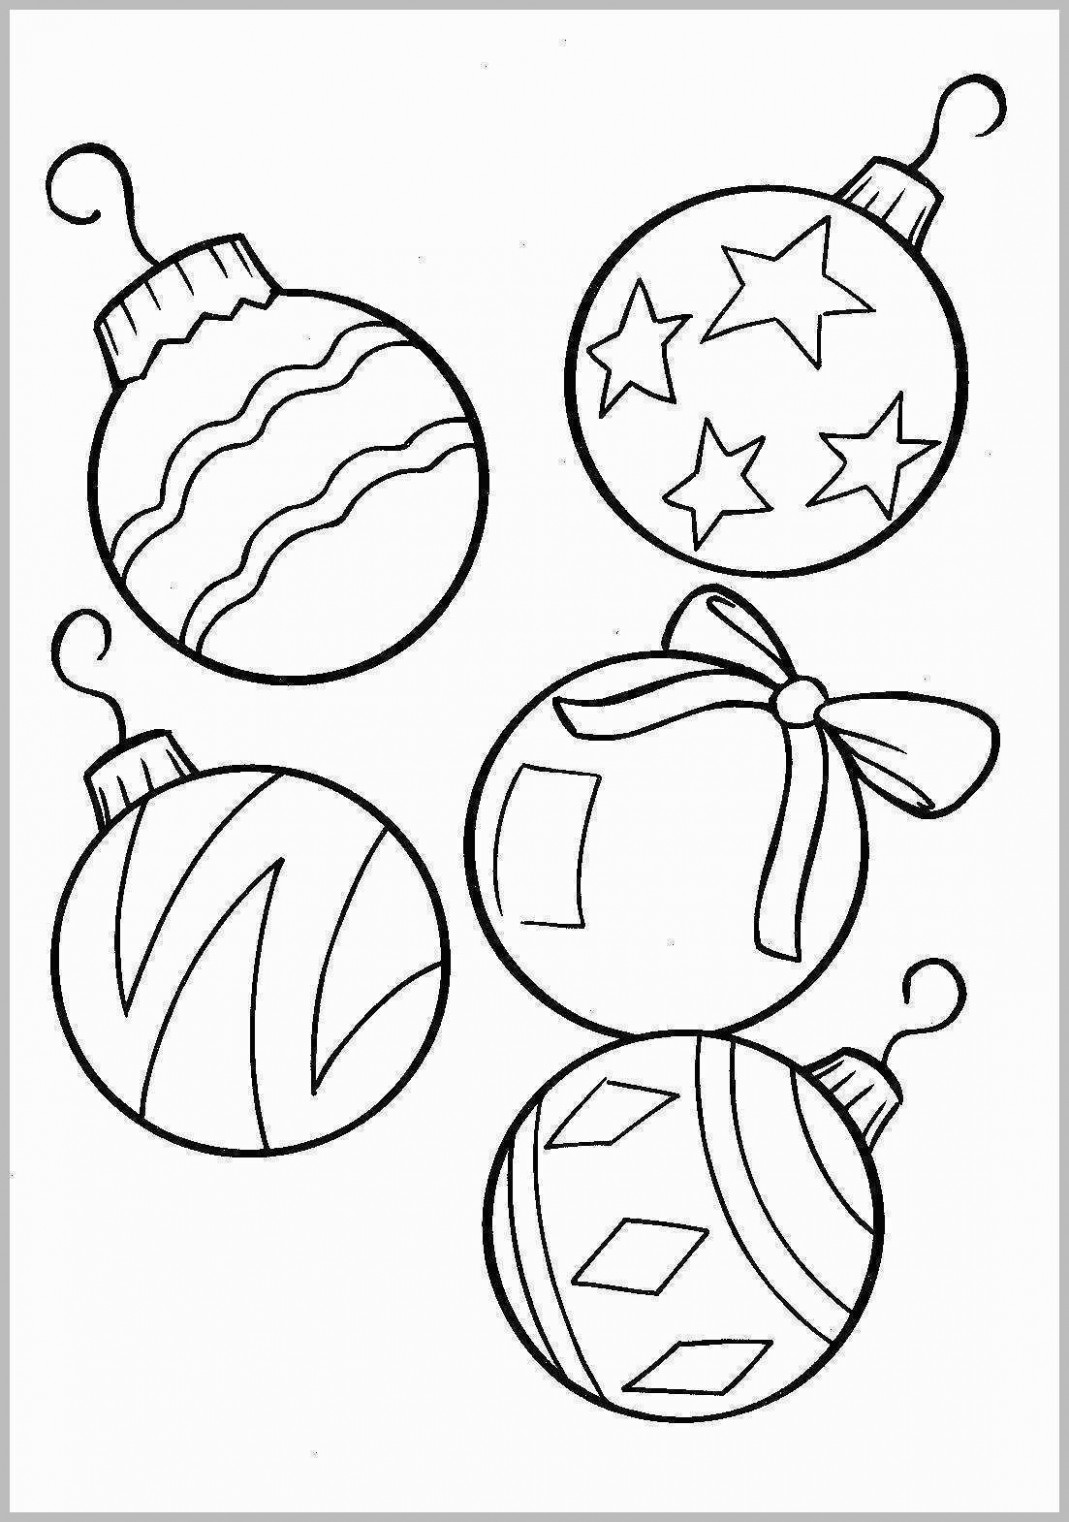 Childrens Church Coloring Pages Pleasant Coloring Pages Christmas ..